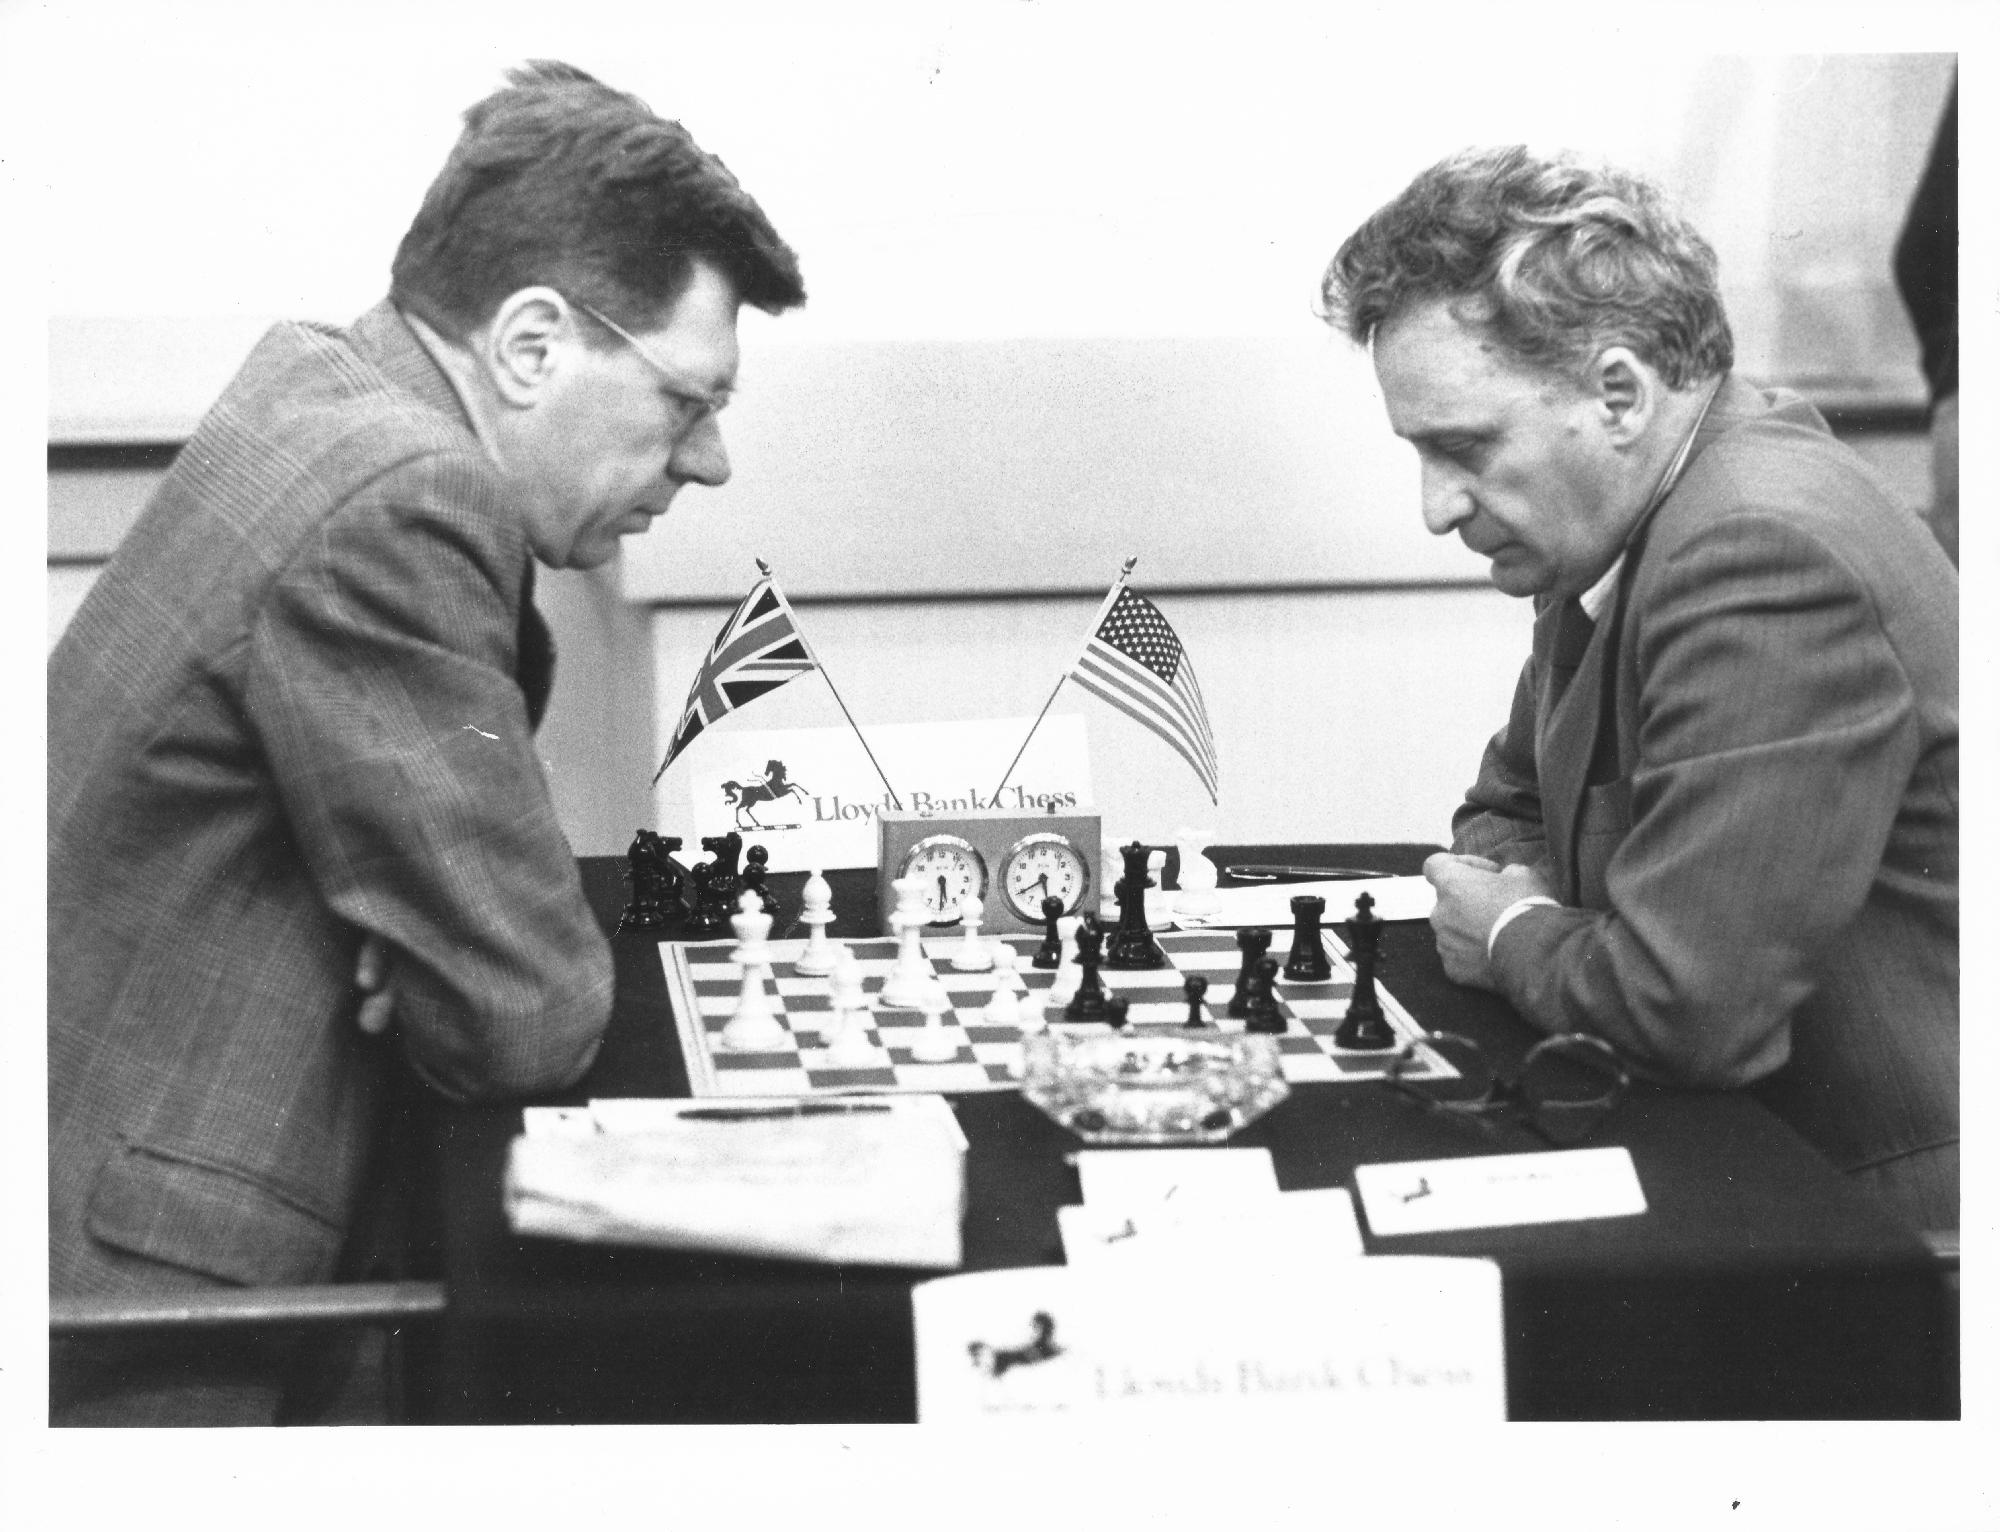 Michael Franklin (left) at the Lloyds Bank Masters playing IGM Leonid Shamkovich